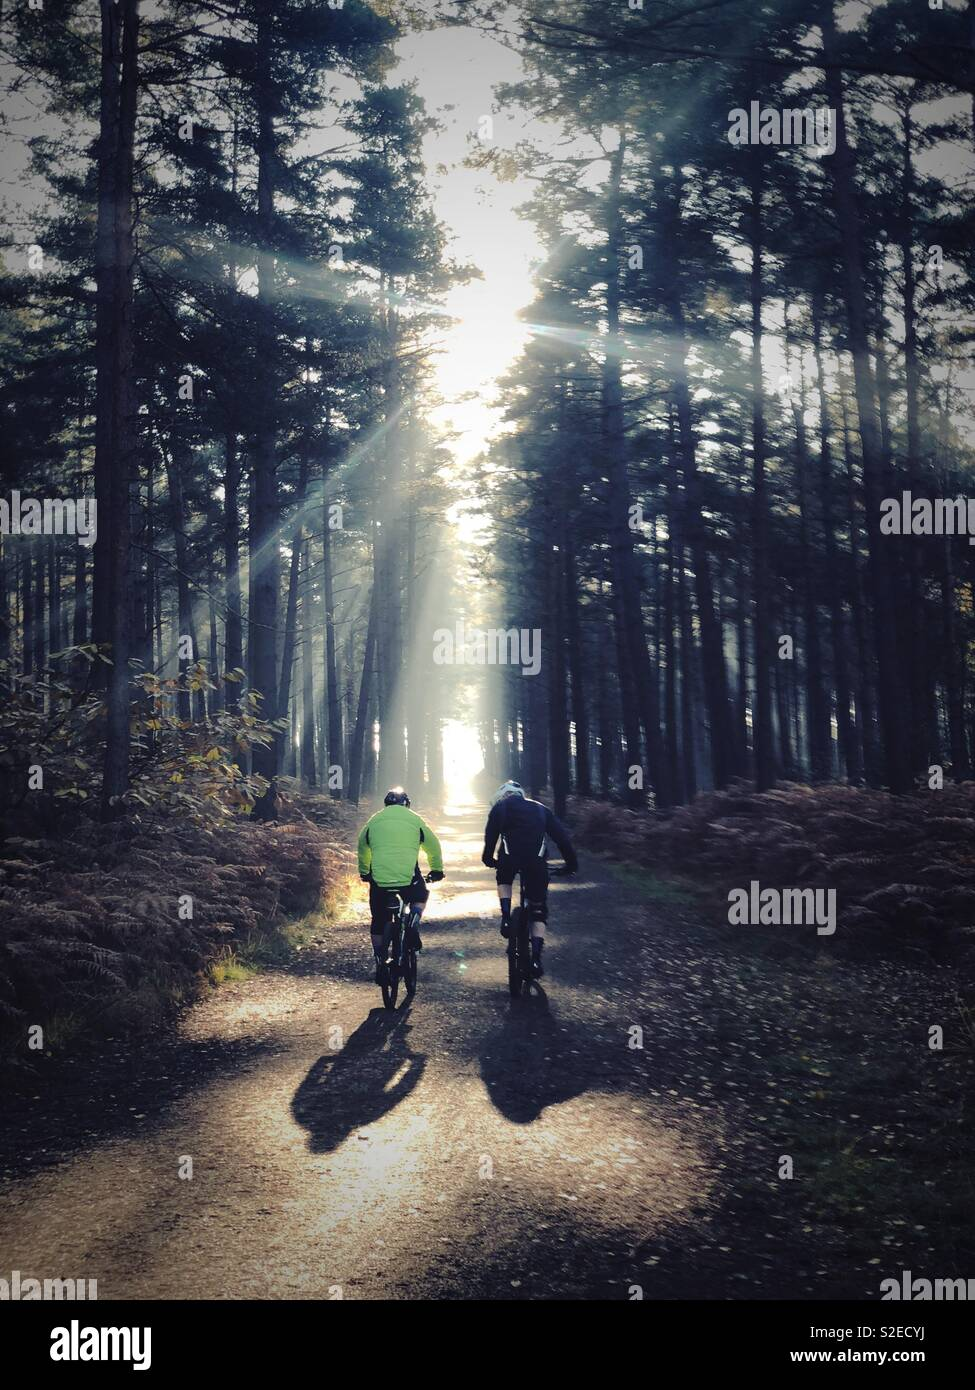 Mountain Biking in the forest at Swinley Forest, Berks, Uk - Stock Image